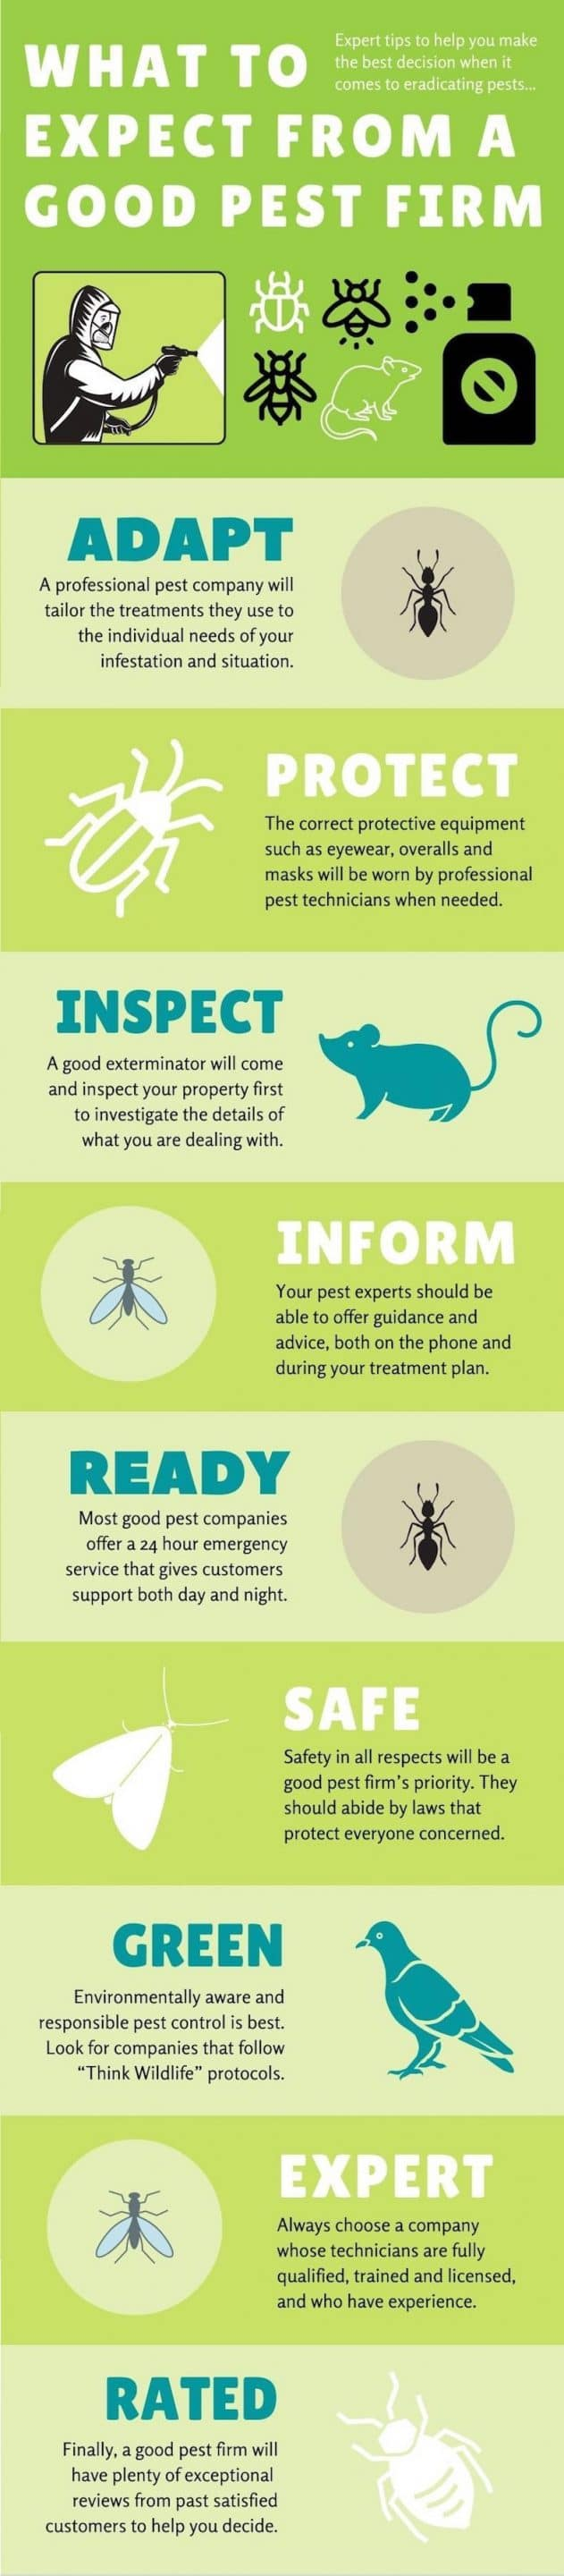 good pest firm infographic website